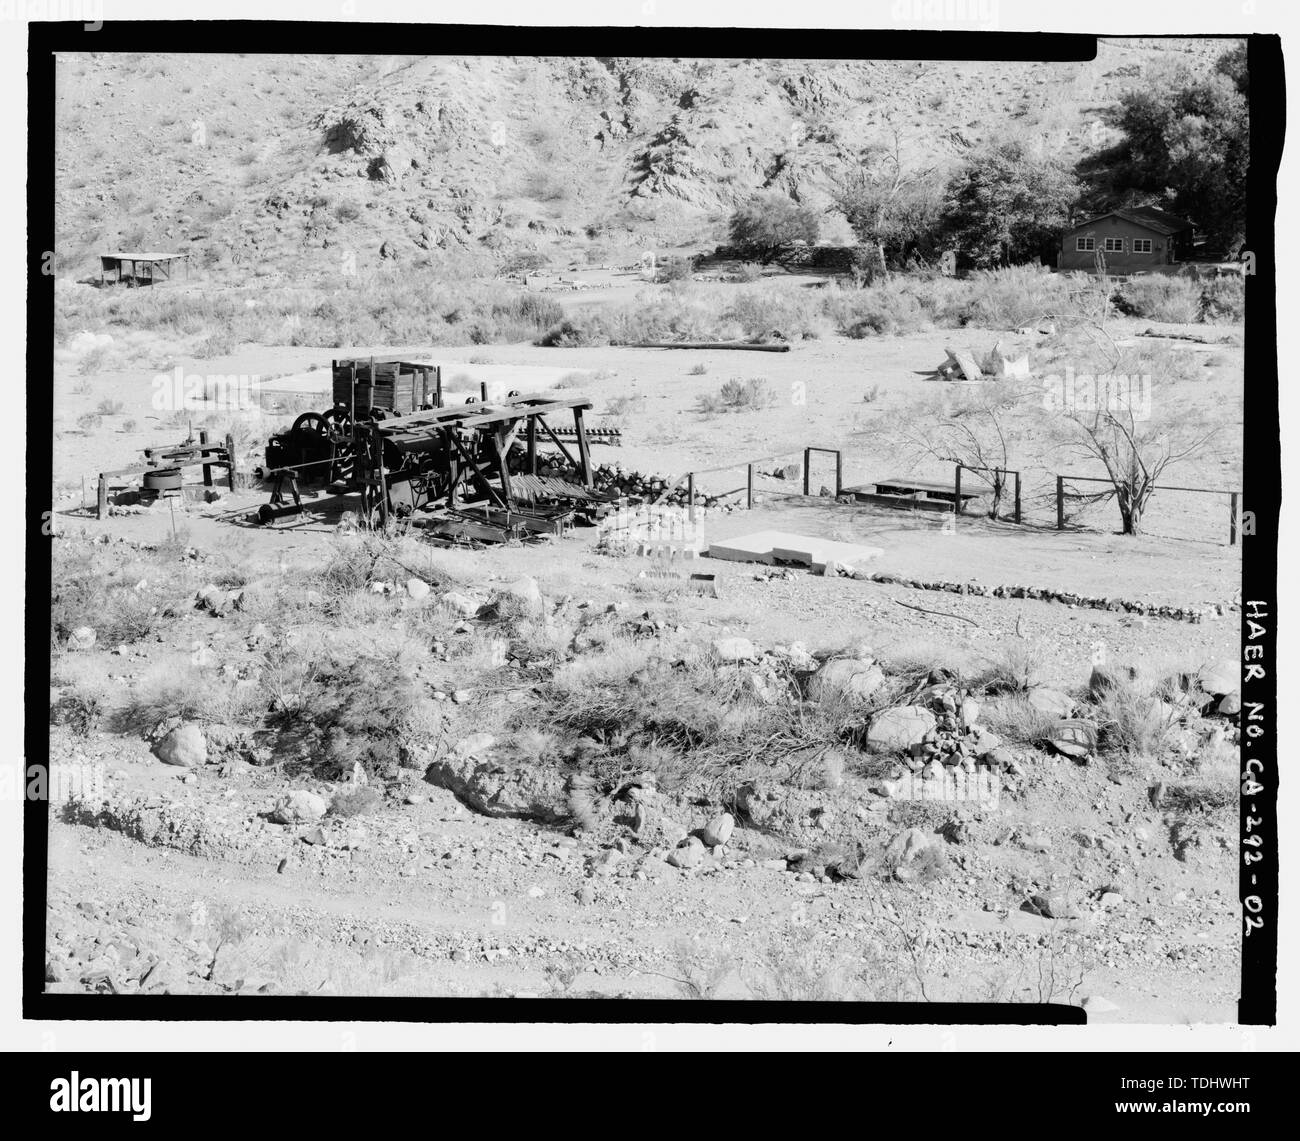 OVERVIEW OF GOLD HILL MILL, ROAD, AND WARM SPRINGS CAMP BUILDINGS, LOOKING SOUTH SOUTHEAST. THE FUNCTION OF THE FLAT AREA AT CENTER RIGHT IS UNKNOWN. - Gold Hill Mill, Warm Spring Canyon Road, Death Valley Junction, Inyo County, CA - Stock Image